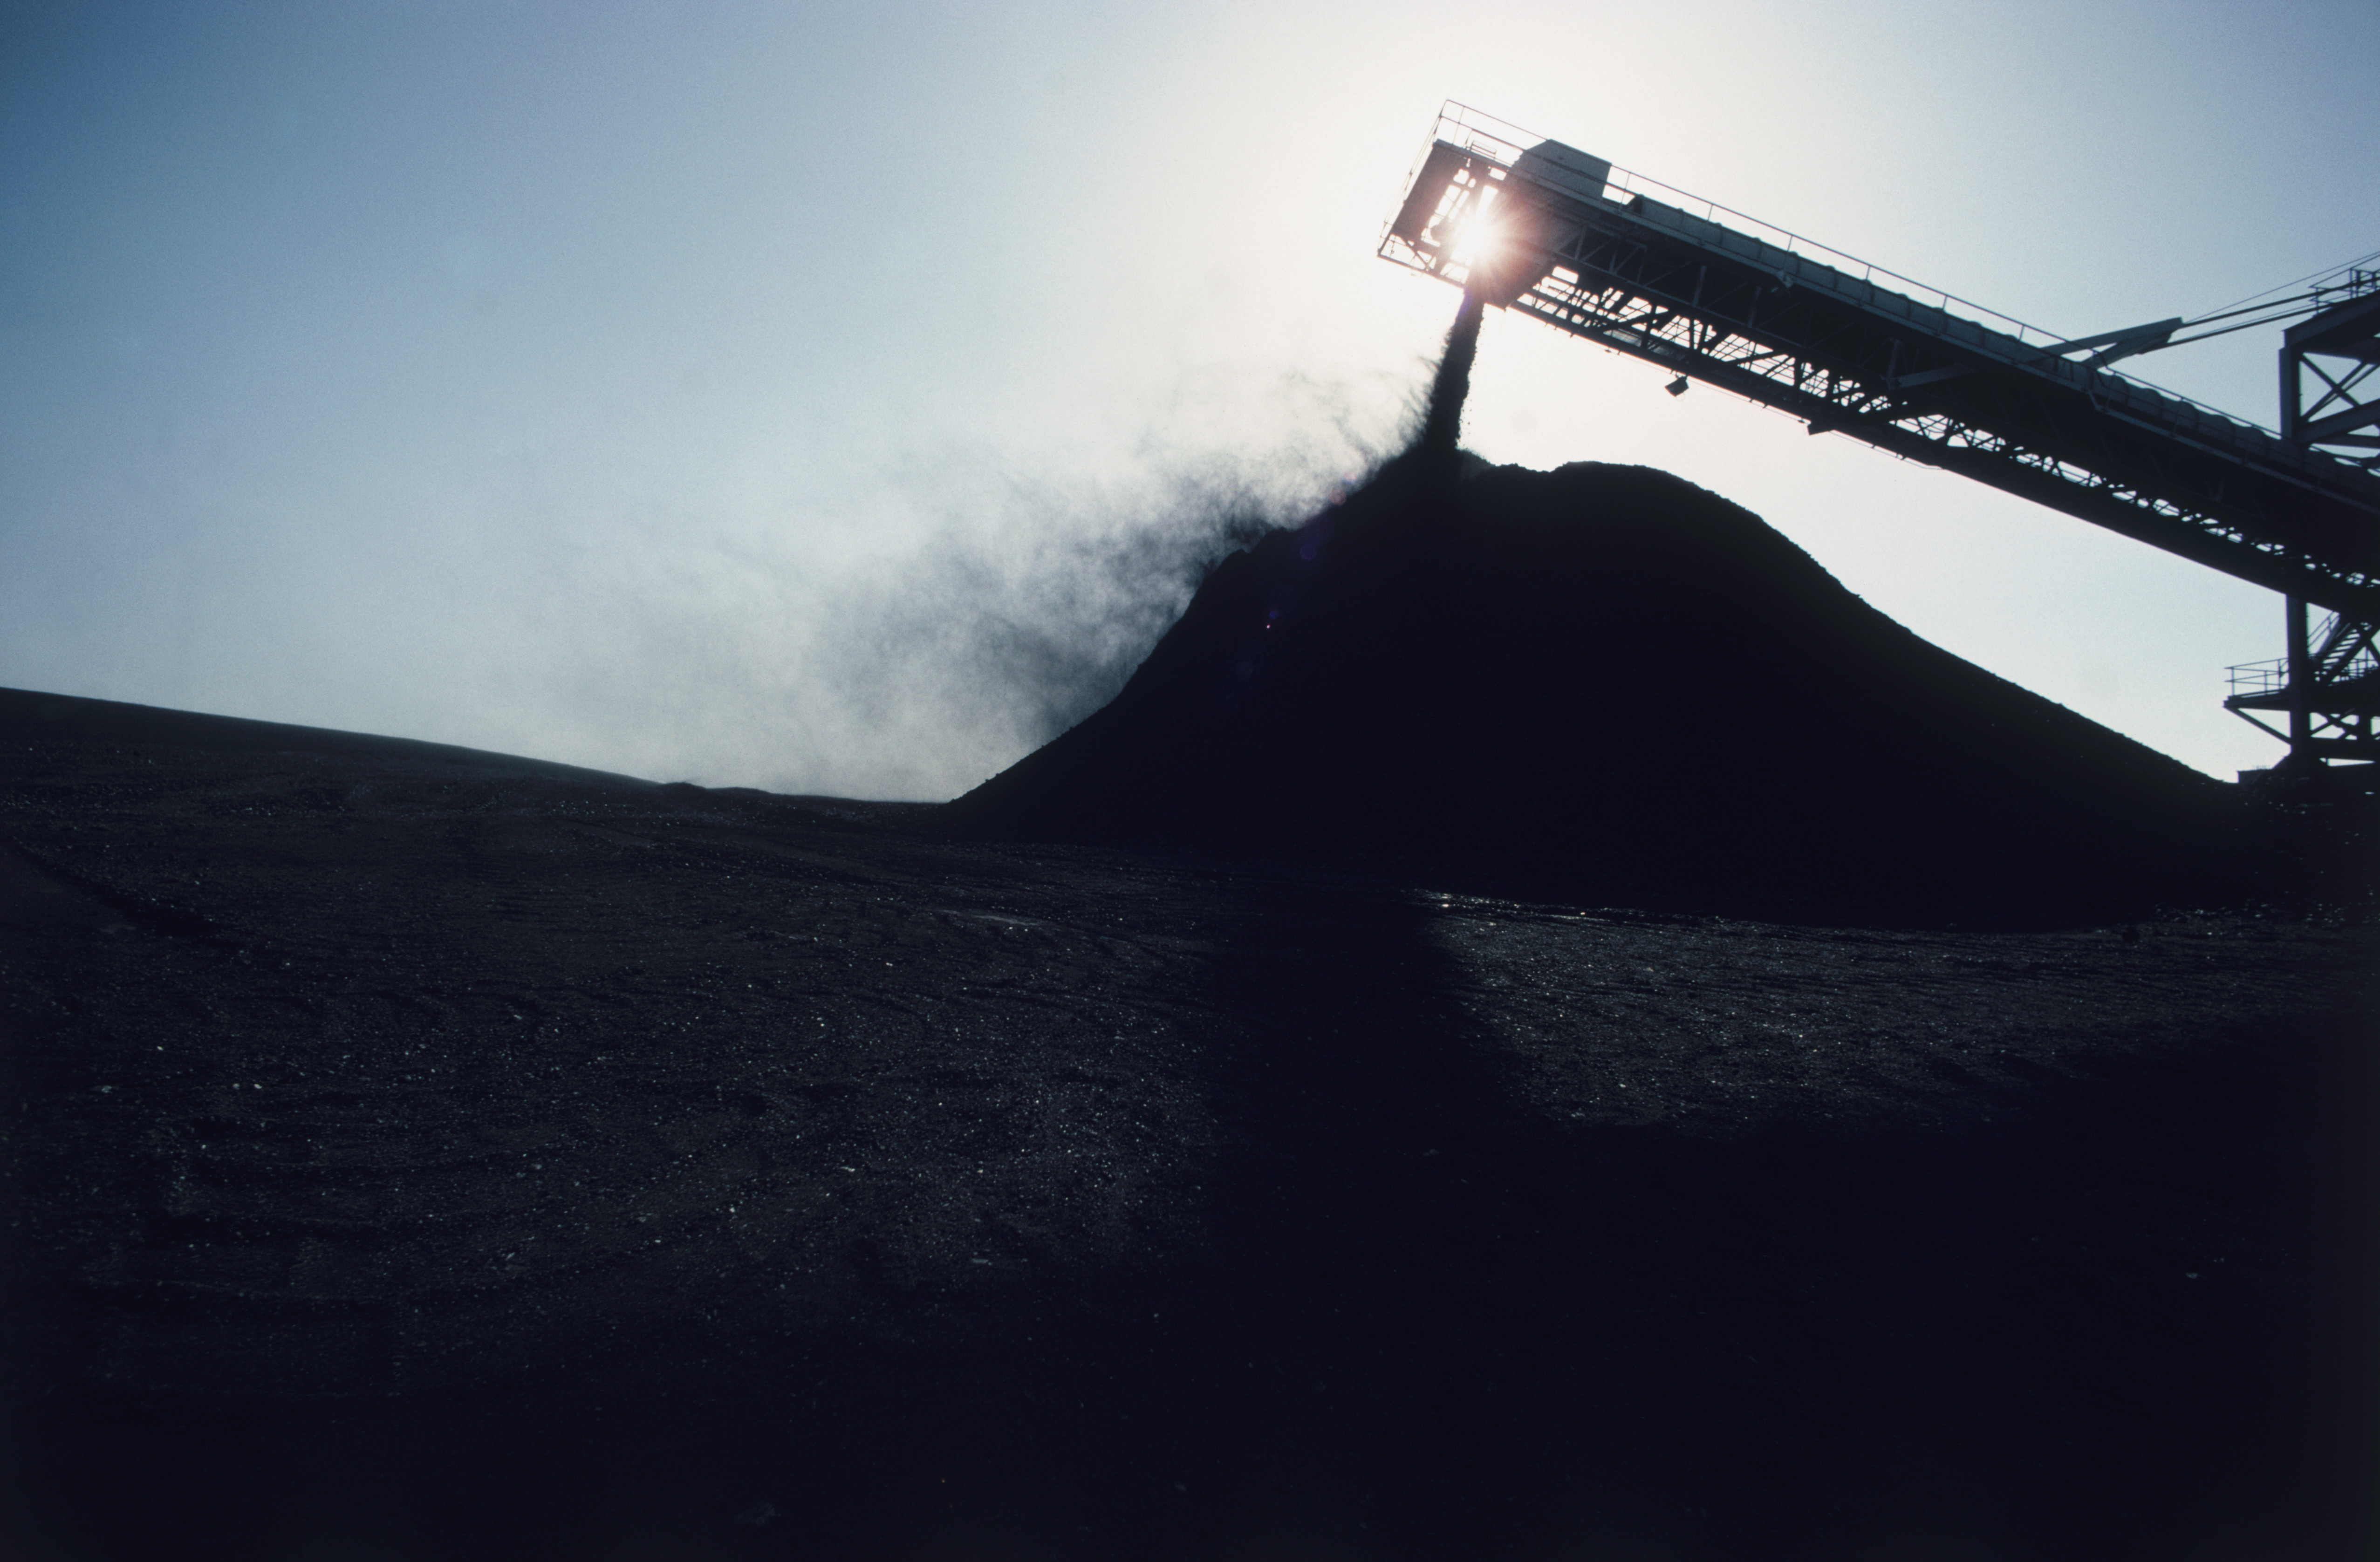 The increase in coal output should start to boost employment.